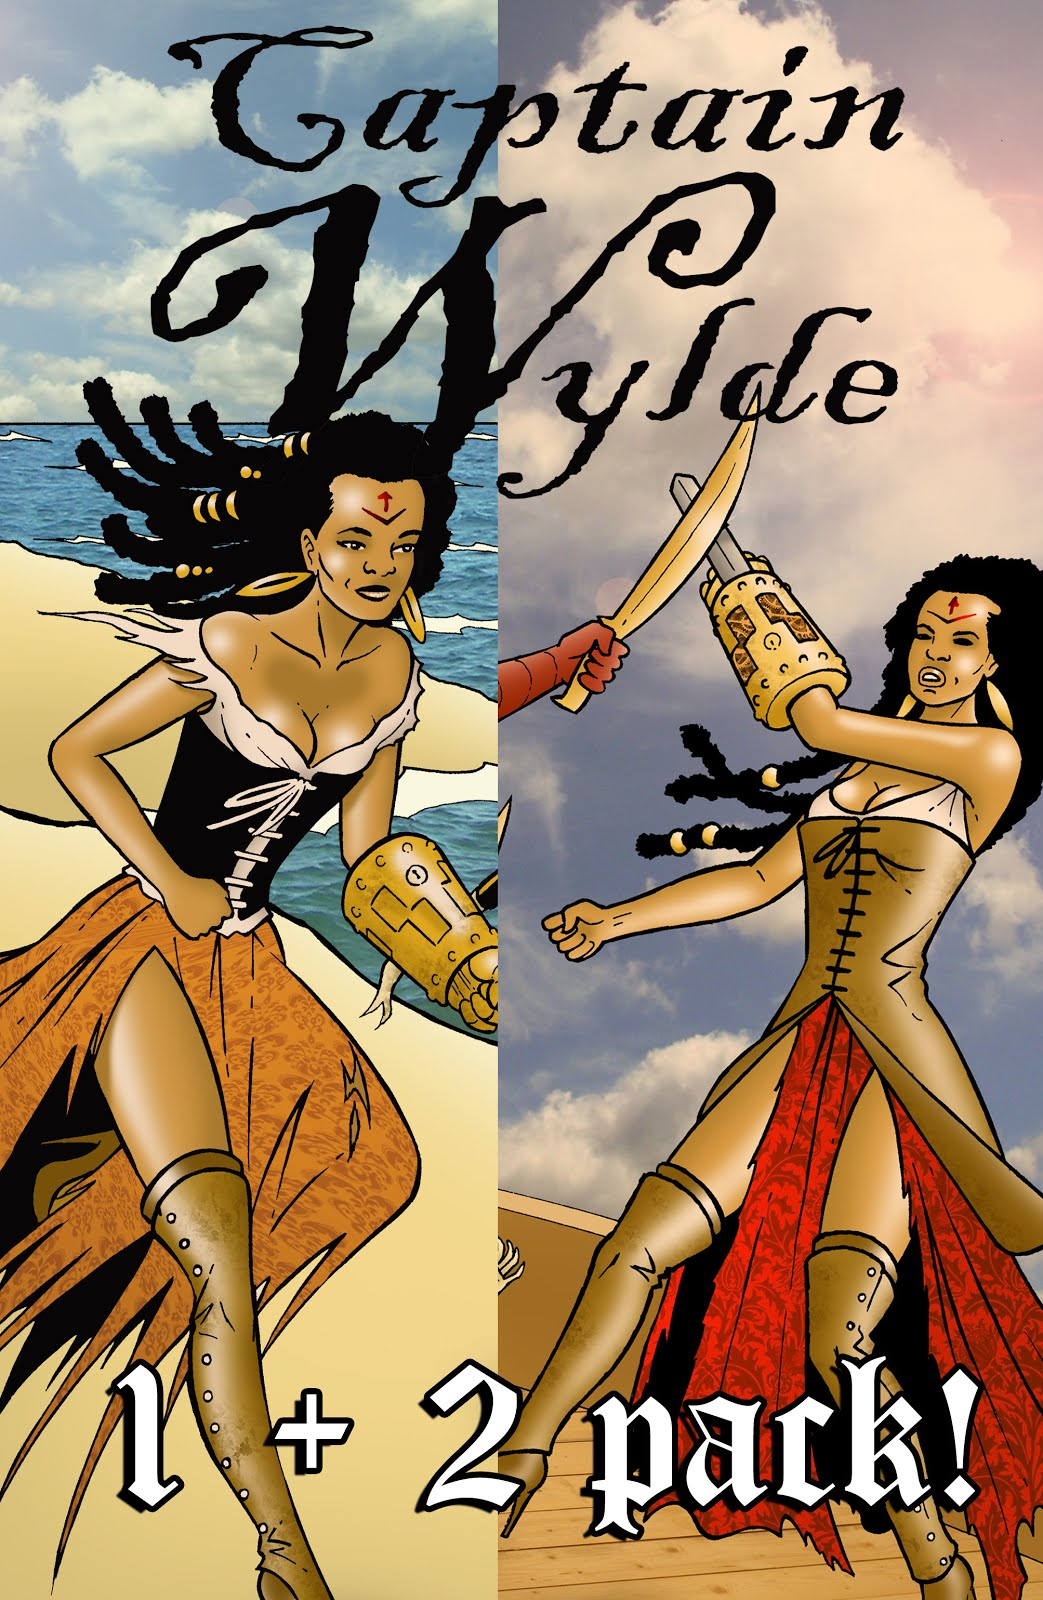 Buy the CAPTAIN WYLDE issues 1 + 2 value pack below!